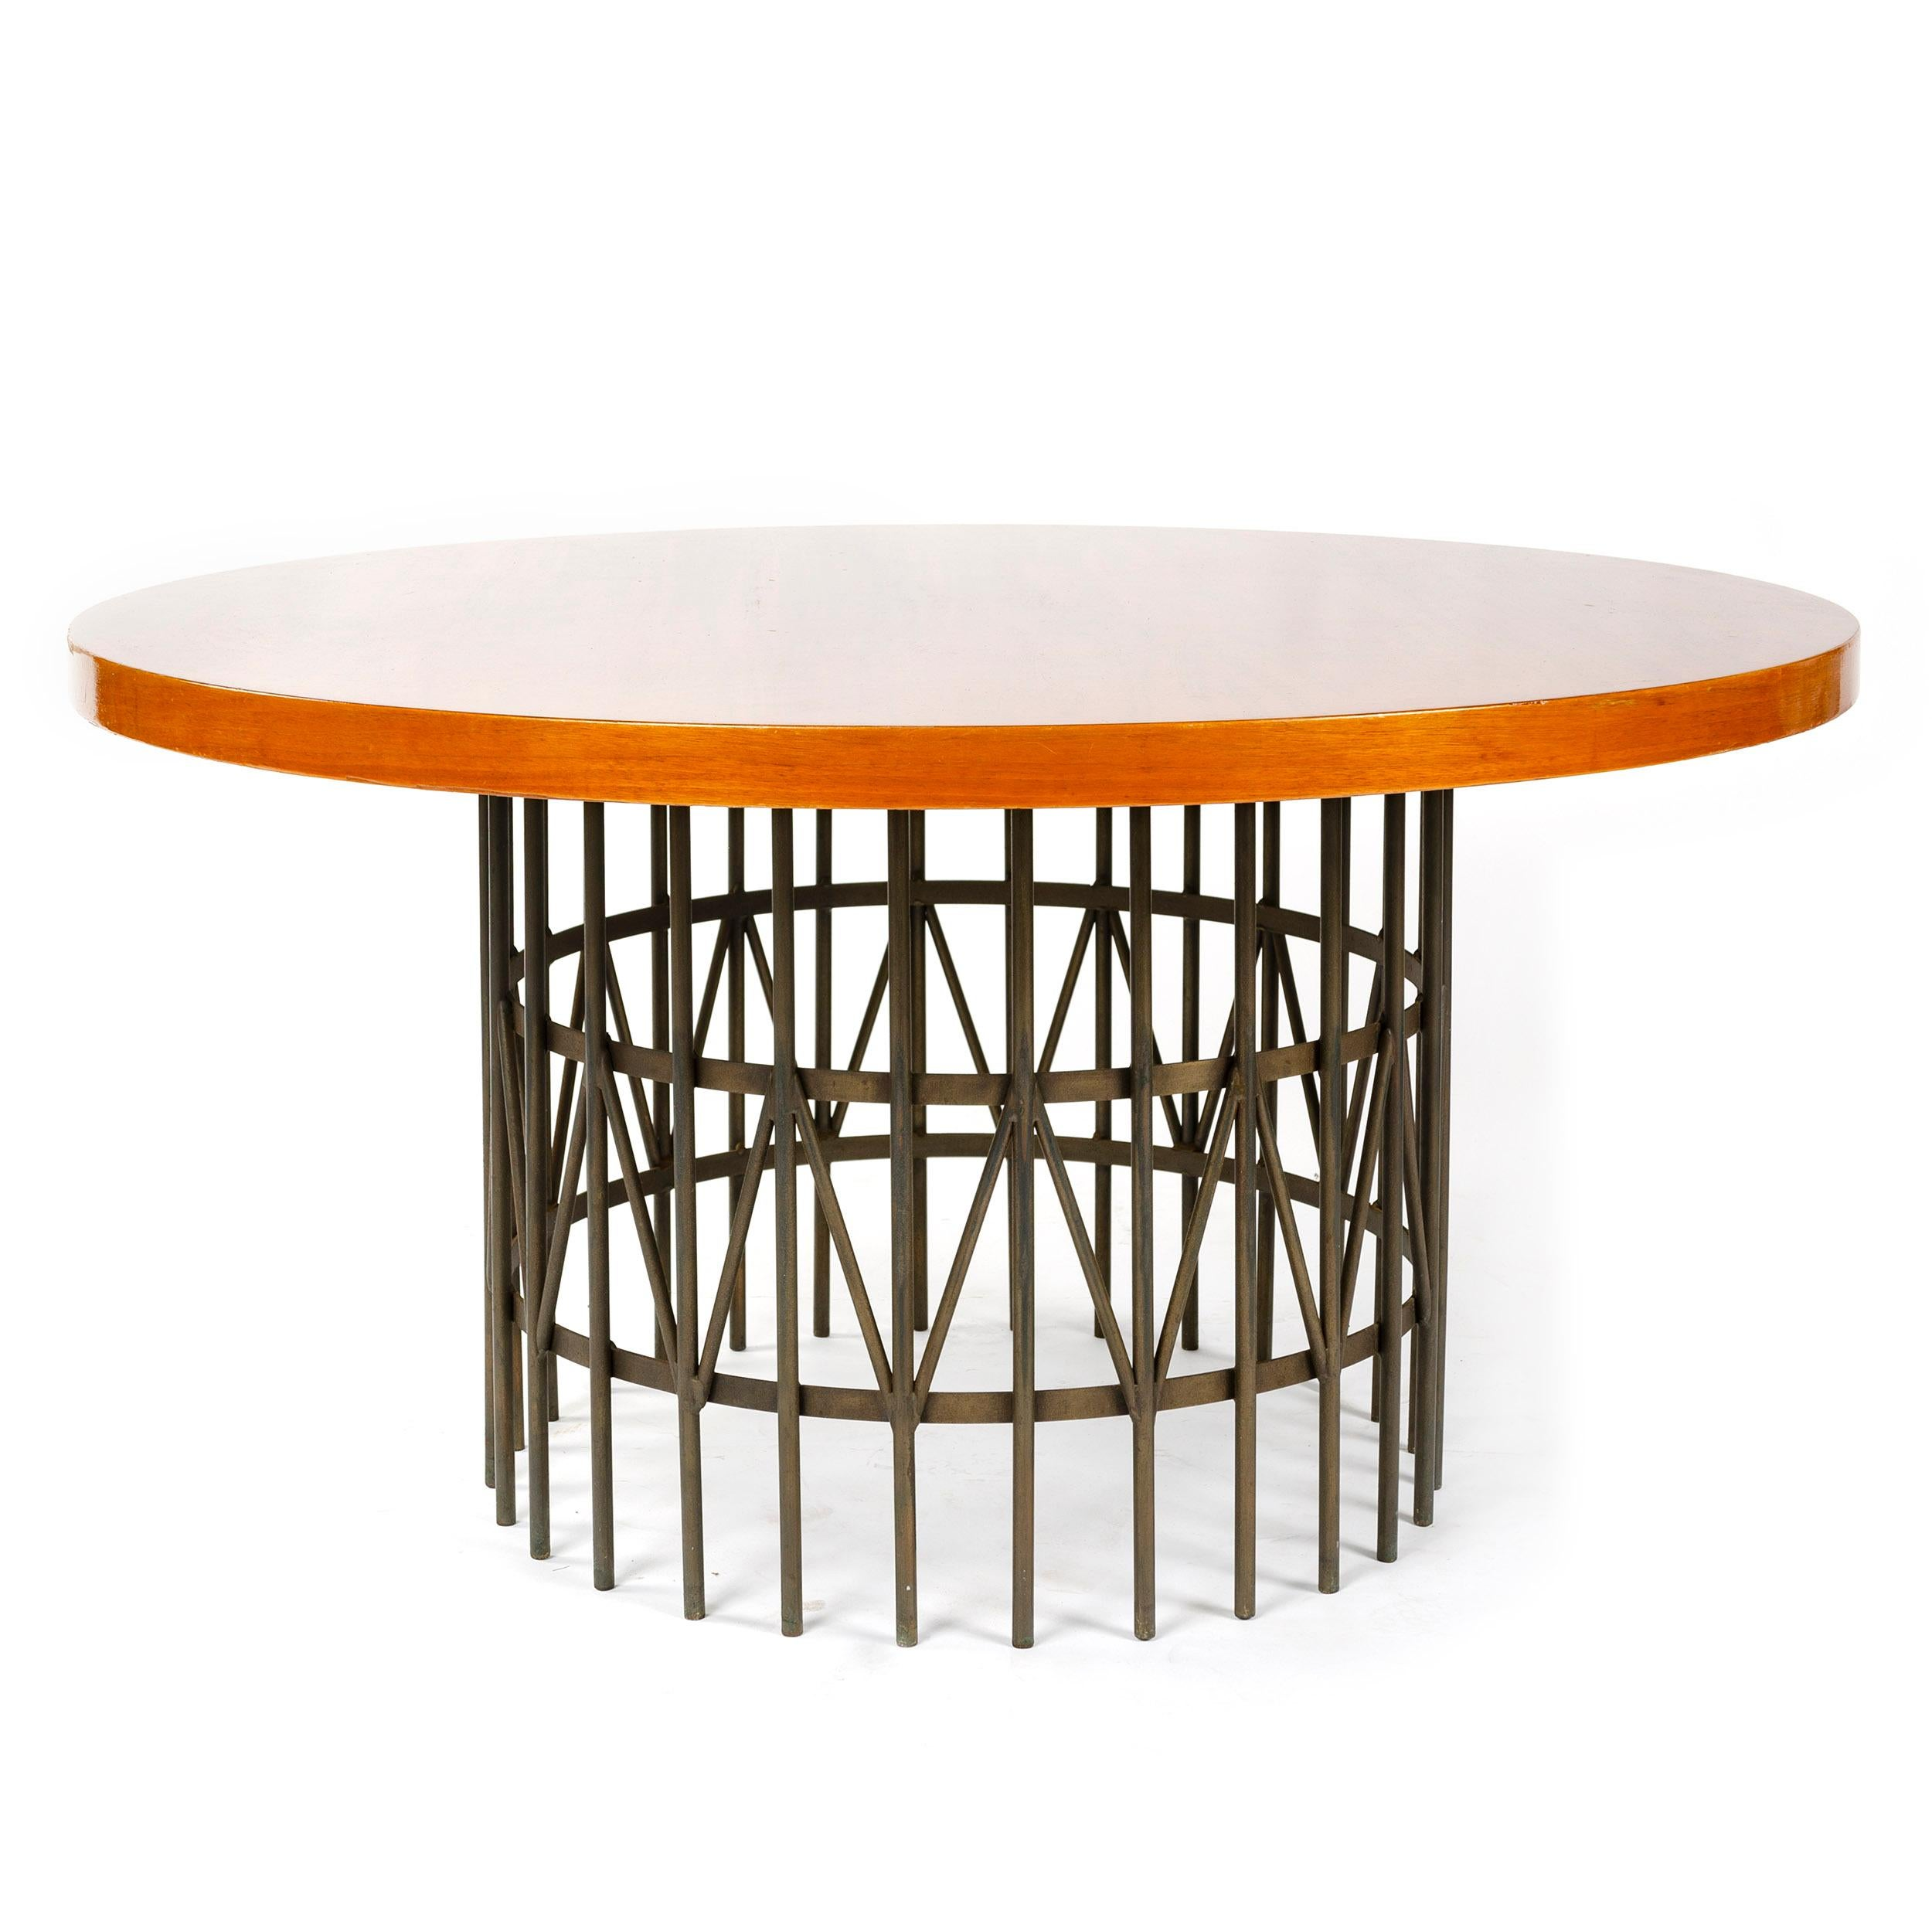 1960s Cocktail Table by Milo Baughman for Thayer-Coggin